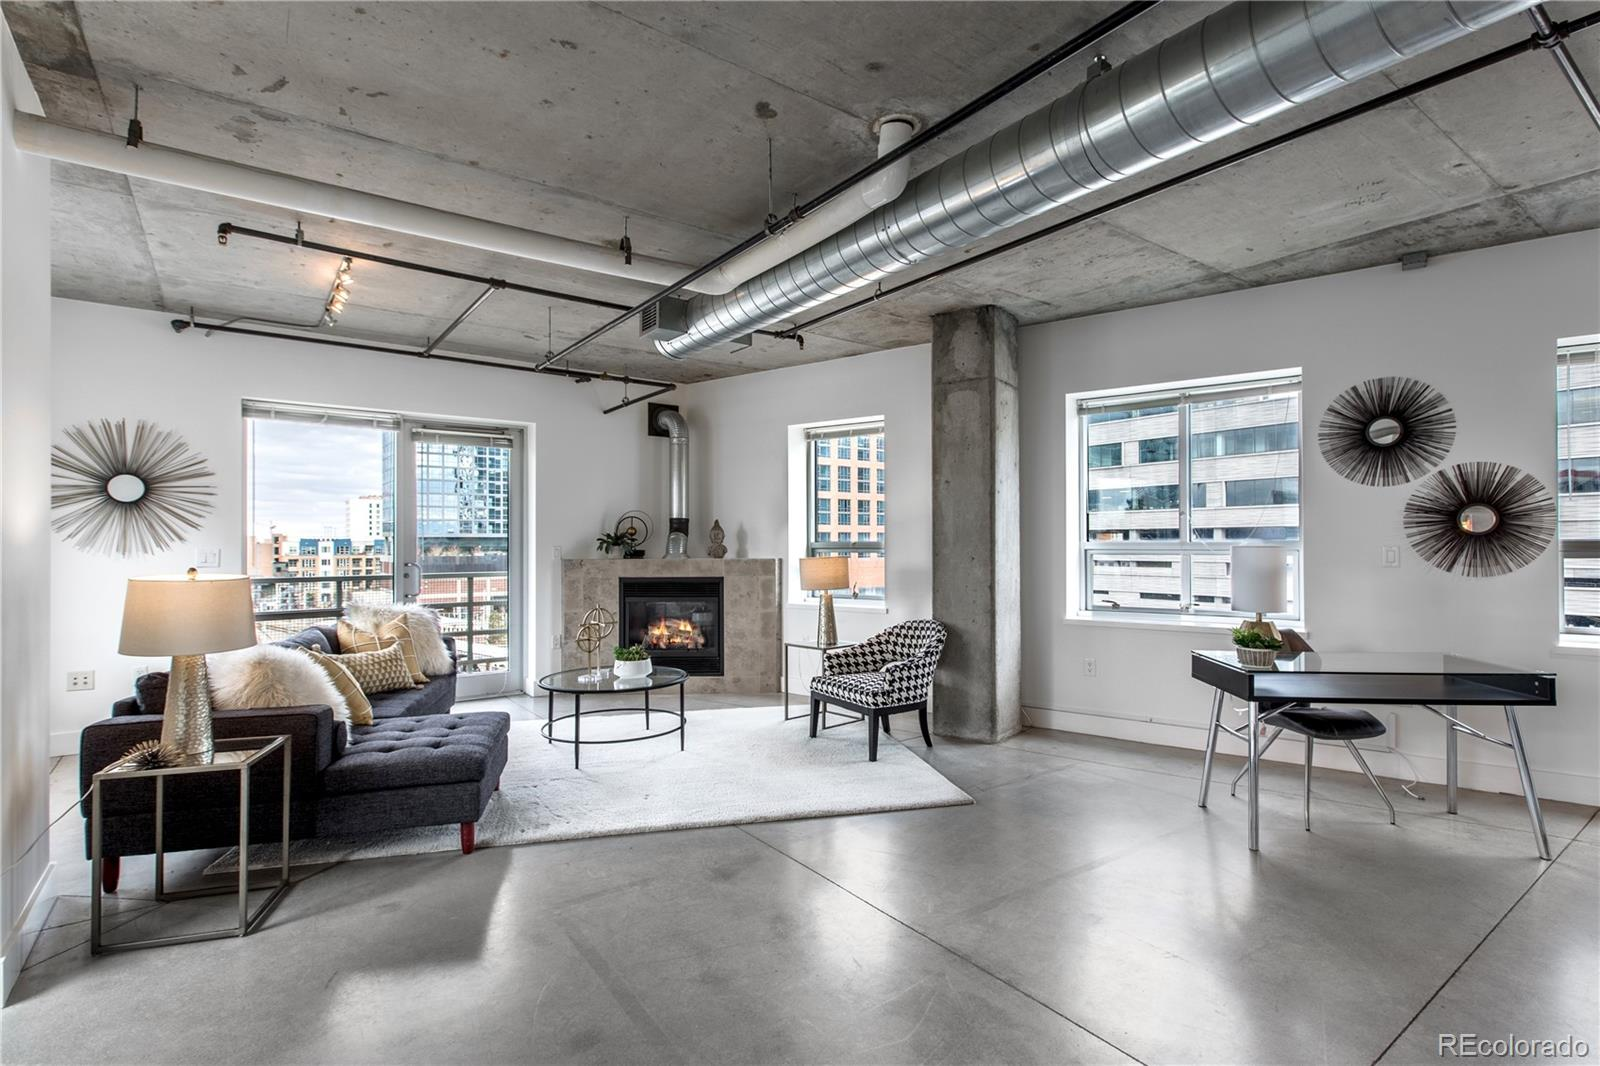 This uber cool, sophisticated, urban loft has a unique layout – different than the other residences in one of Riverfront's premier buildings, Park Place Lofts! It has a gas fireplace, which is super rare, and lots of extra glass so it is flooded with light! Terrific master suite with a HUGE closet and five-piece bath. The balcony is perfectly positioned to optimize views.  The patio also has a gas stub for a gas grill. The large, open kitchen has stainless steel appliances and a GAS stove along with plentiful cabinets.  The polished concrete floors and exposed mechanical systems and concrete ceilings create a backdrop for any style of living - from traditional to modern. Located at the foot of the Millennium pedestrian bridge you will find yourself within walking distance to hundreds of restaurants, shops, bookstores, Union Station, the Ski Train, art galleries, gyms, Whole Foods, lightrail, parks and the footbridge to the Highlands! All the best that Riverfront Park, Union Station and LoDo has to offer!